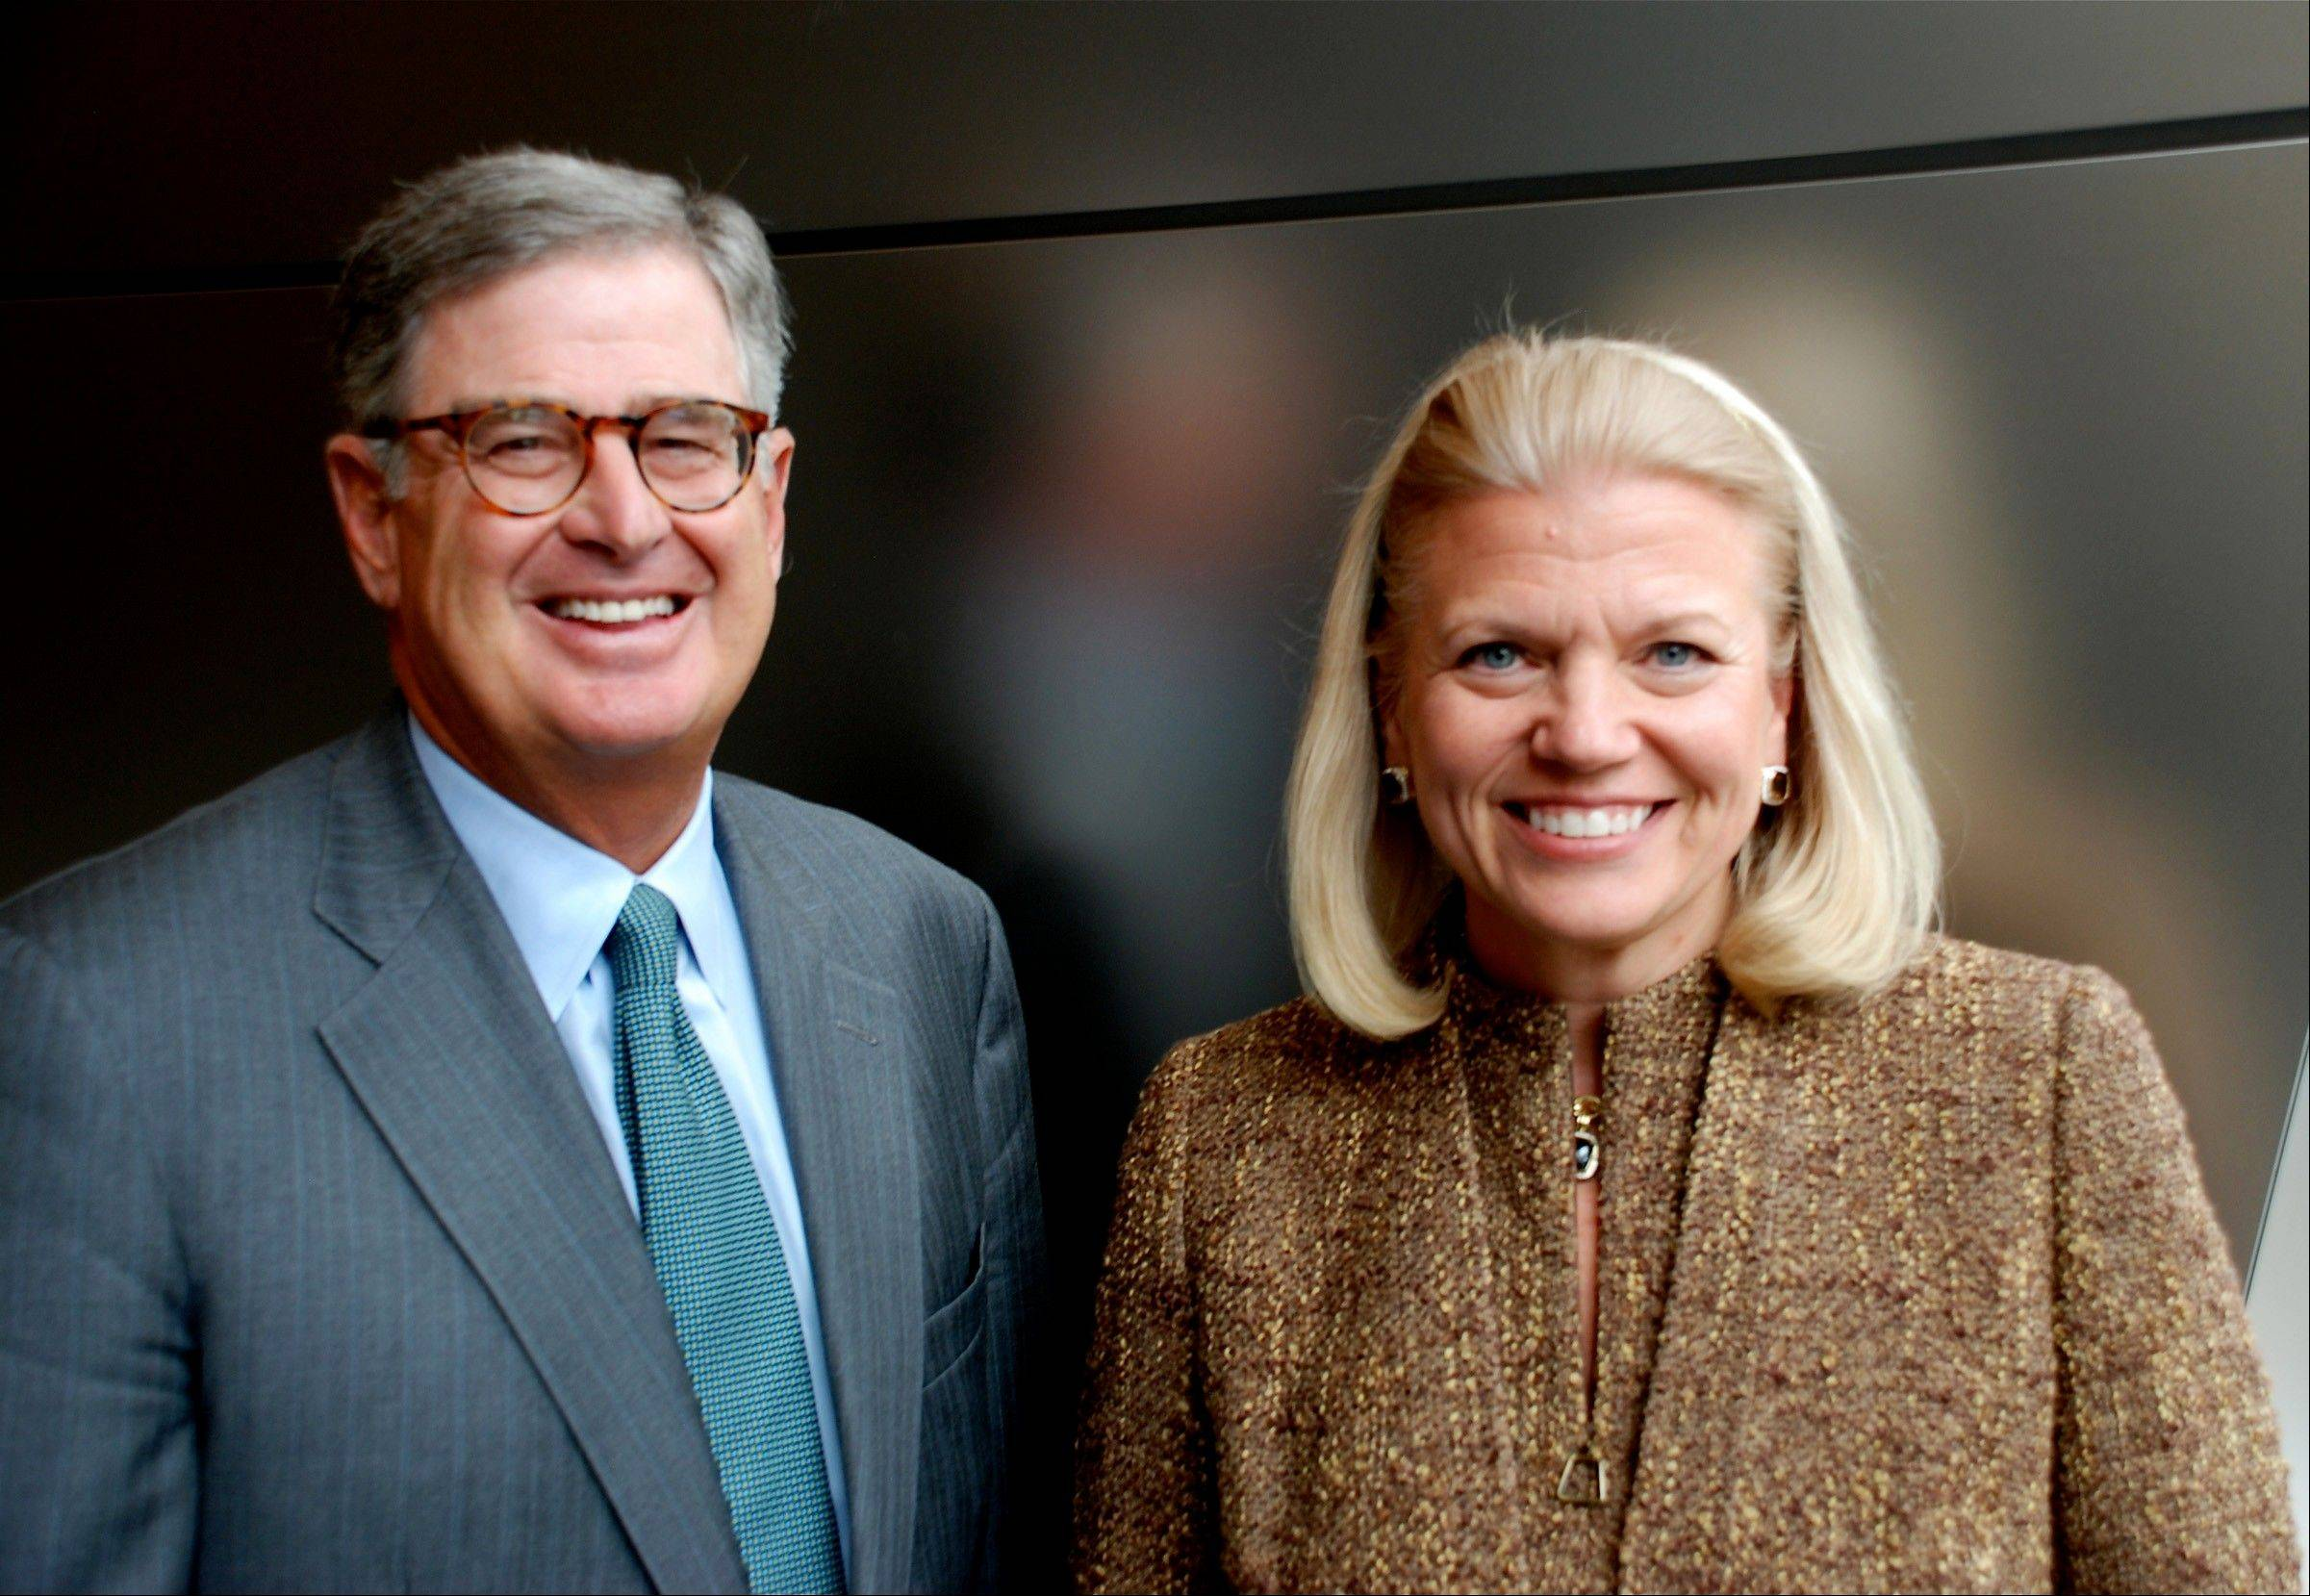 ASSOCIATED PRESS IBM CEO Ginni Rometty, right, will succeed former CEO Sam Palmisano, left, as chairman of the board, it was announced Tuesday.